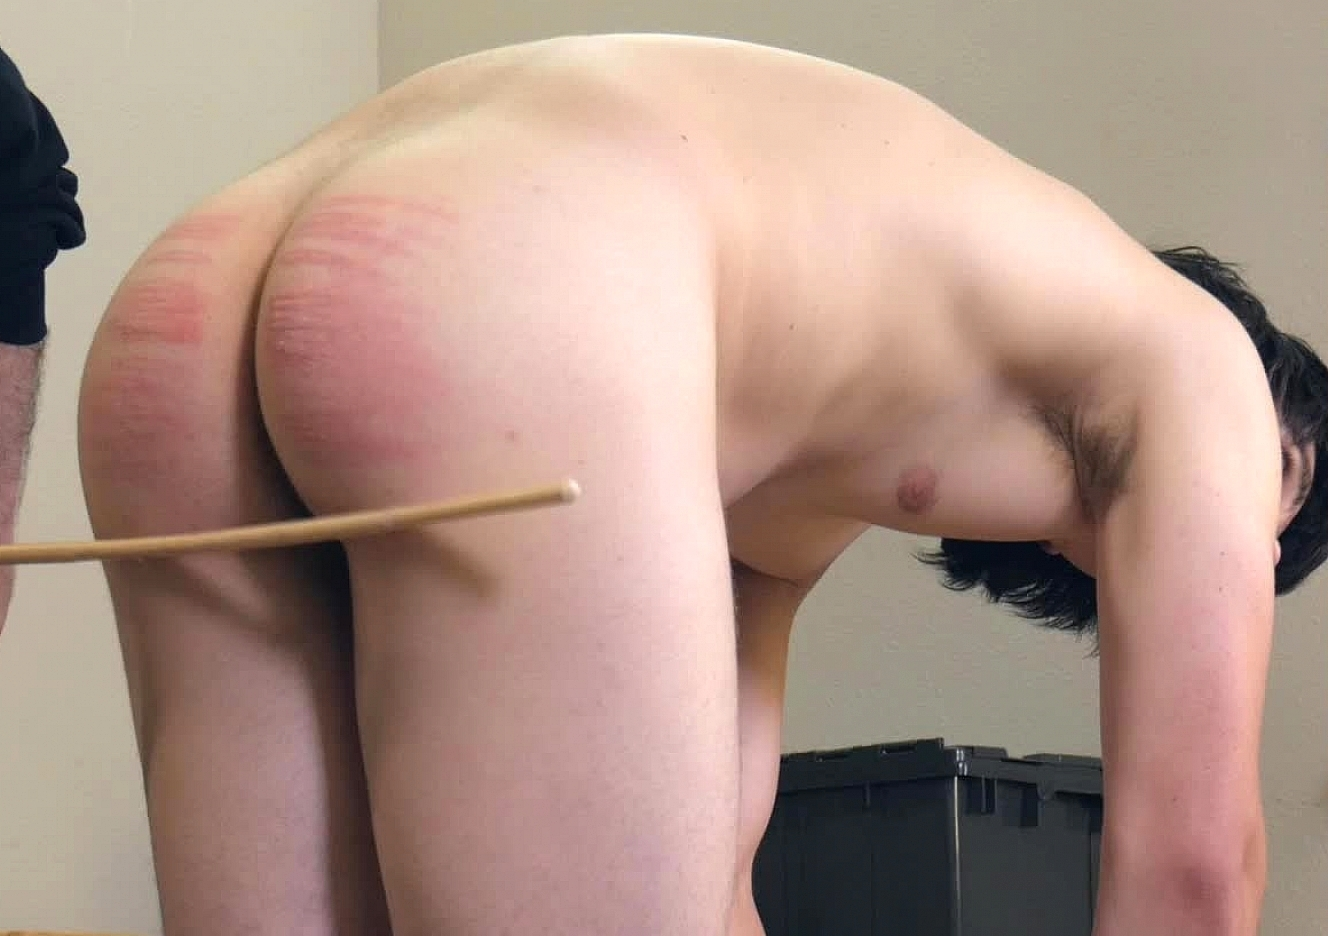 content/160807101-caning-chris/0.jpg